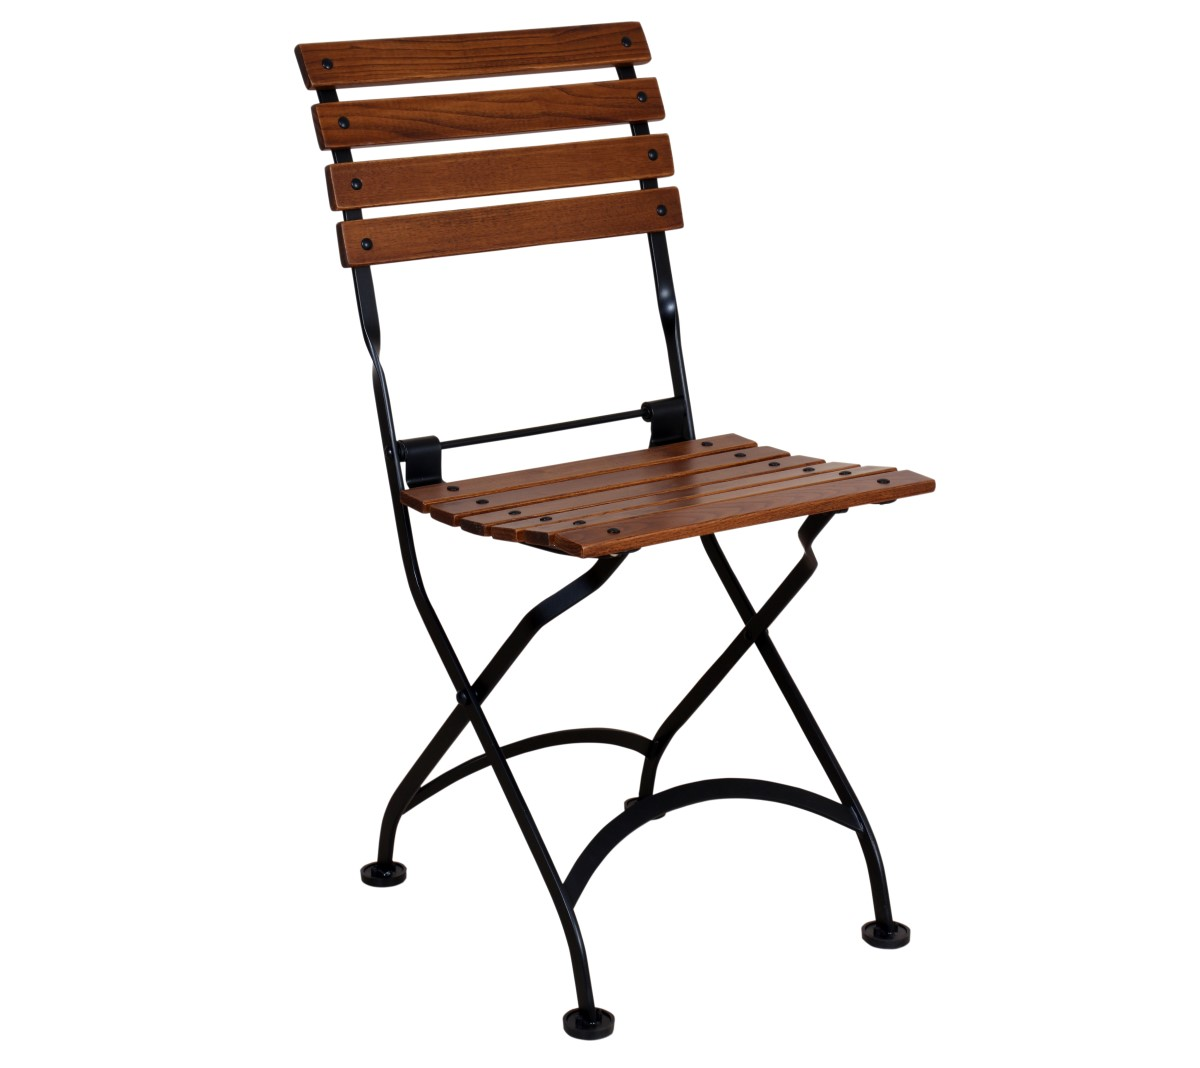 Veronique Chair - European Chestnut Slat - Walnu Finish with Black Frame - 5504CW-BK